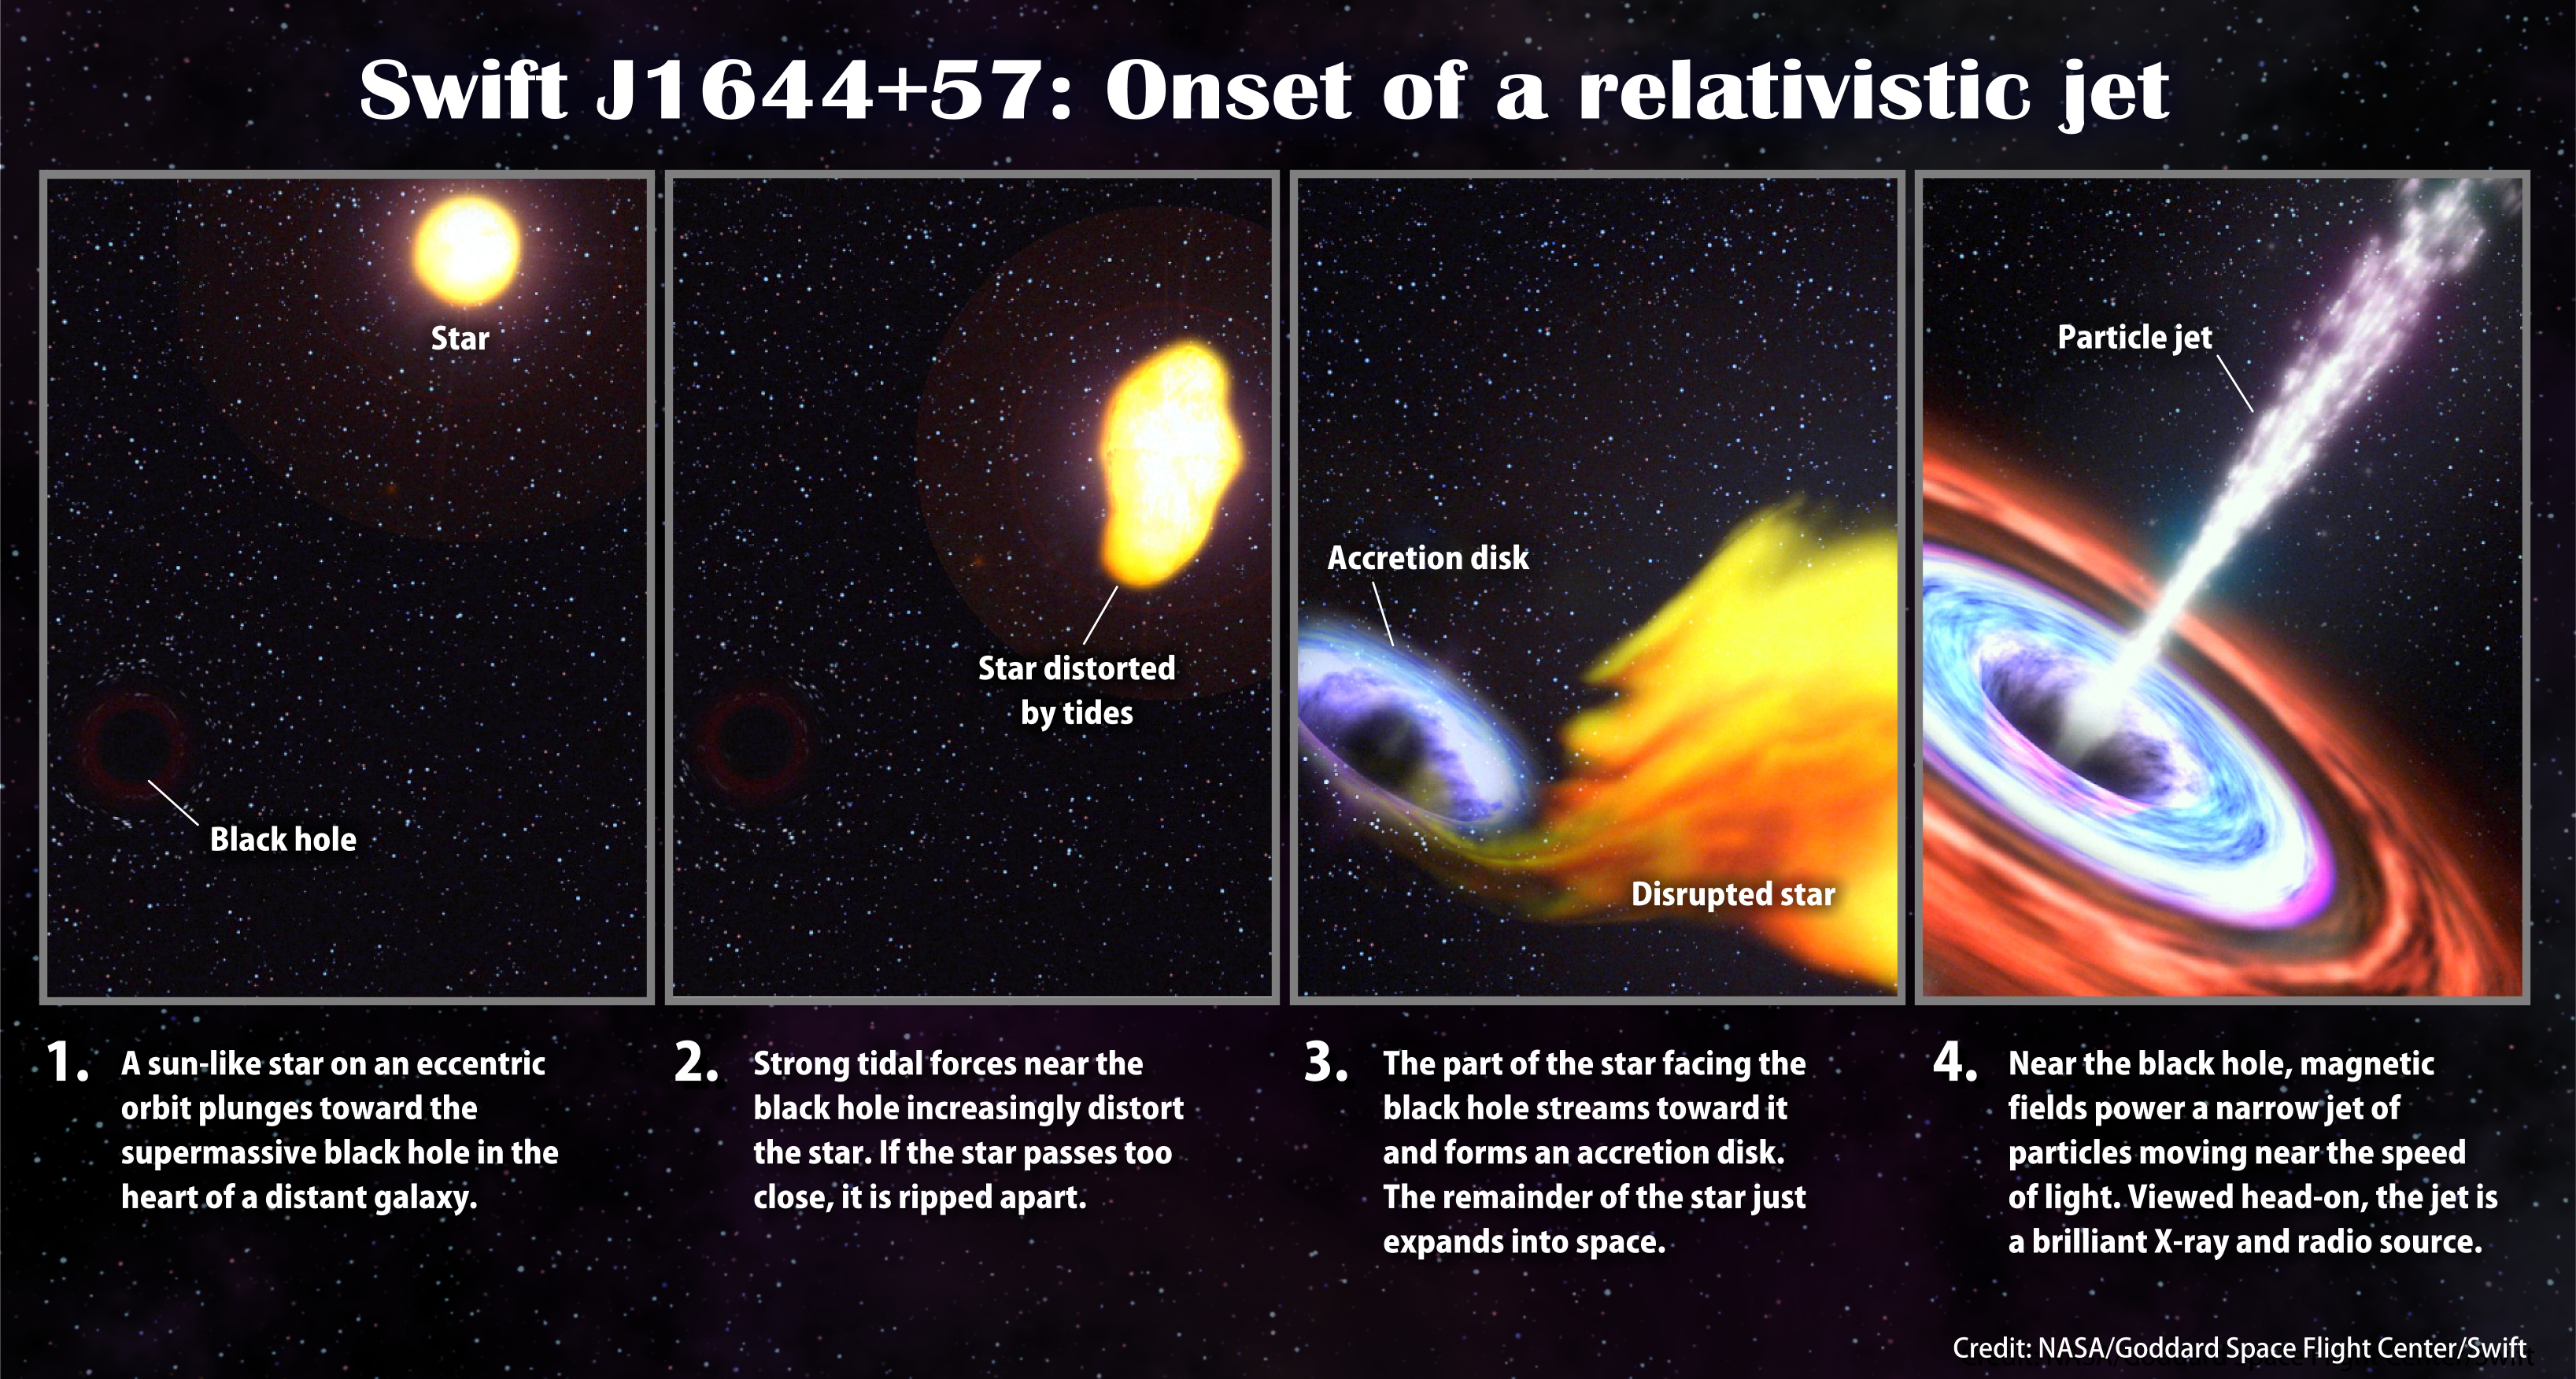 how a distant black hole devoured a star nasa this illustration steps through the events that scientists think likely resulted in swift j1644 57